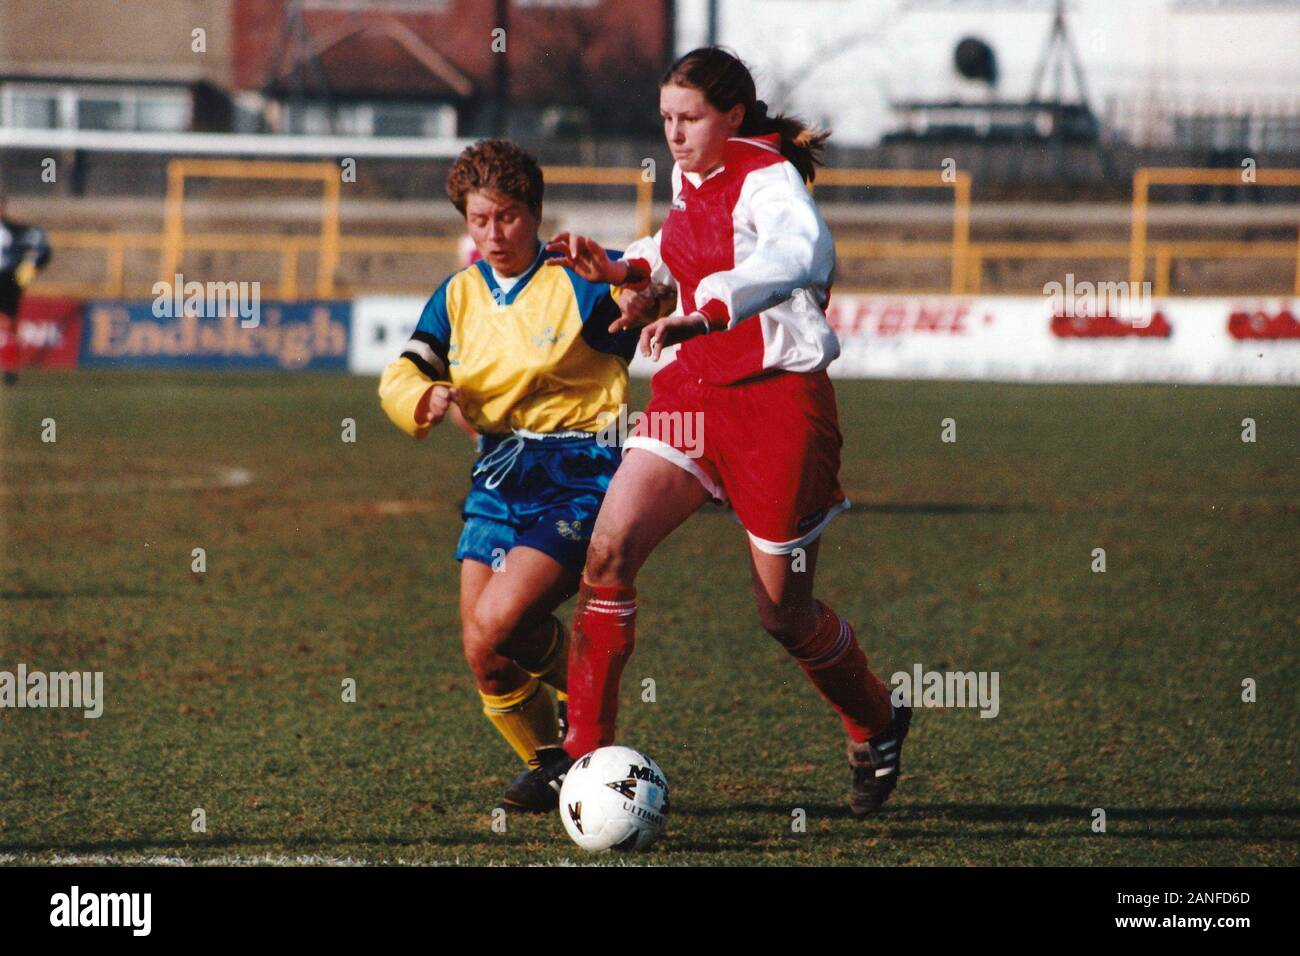 Kelly Smith of Wembley and Gillian Coluthard of Doncaster during Doncaster Belles vs Wembley Ladies, FA Women's Premier League Cup Final Football at U Stock Photo